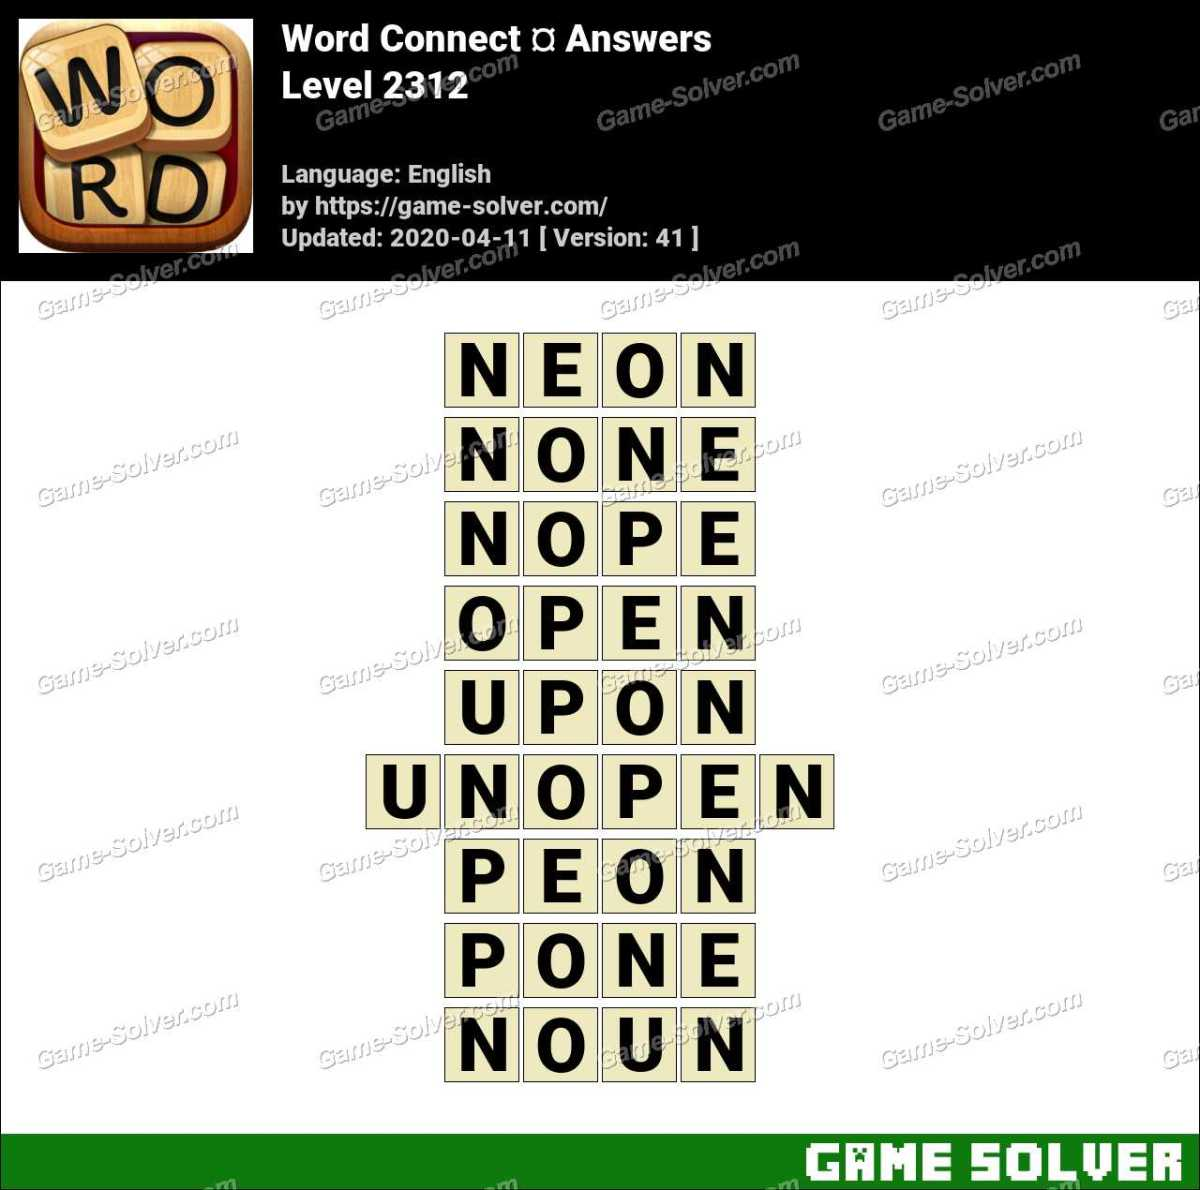 Word Connect Level 2312 Answers